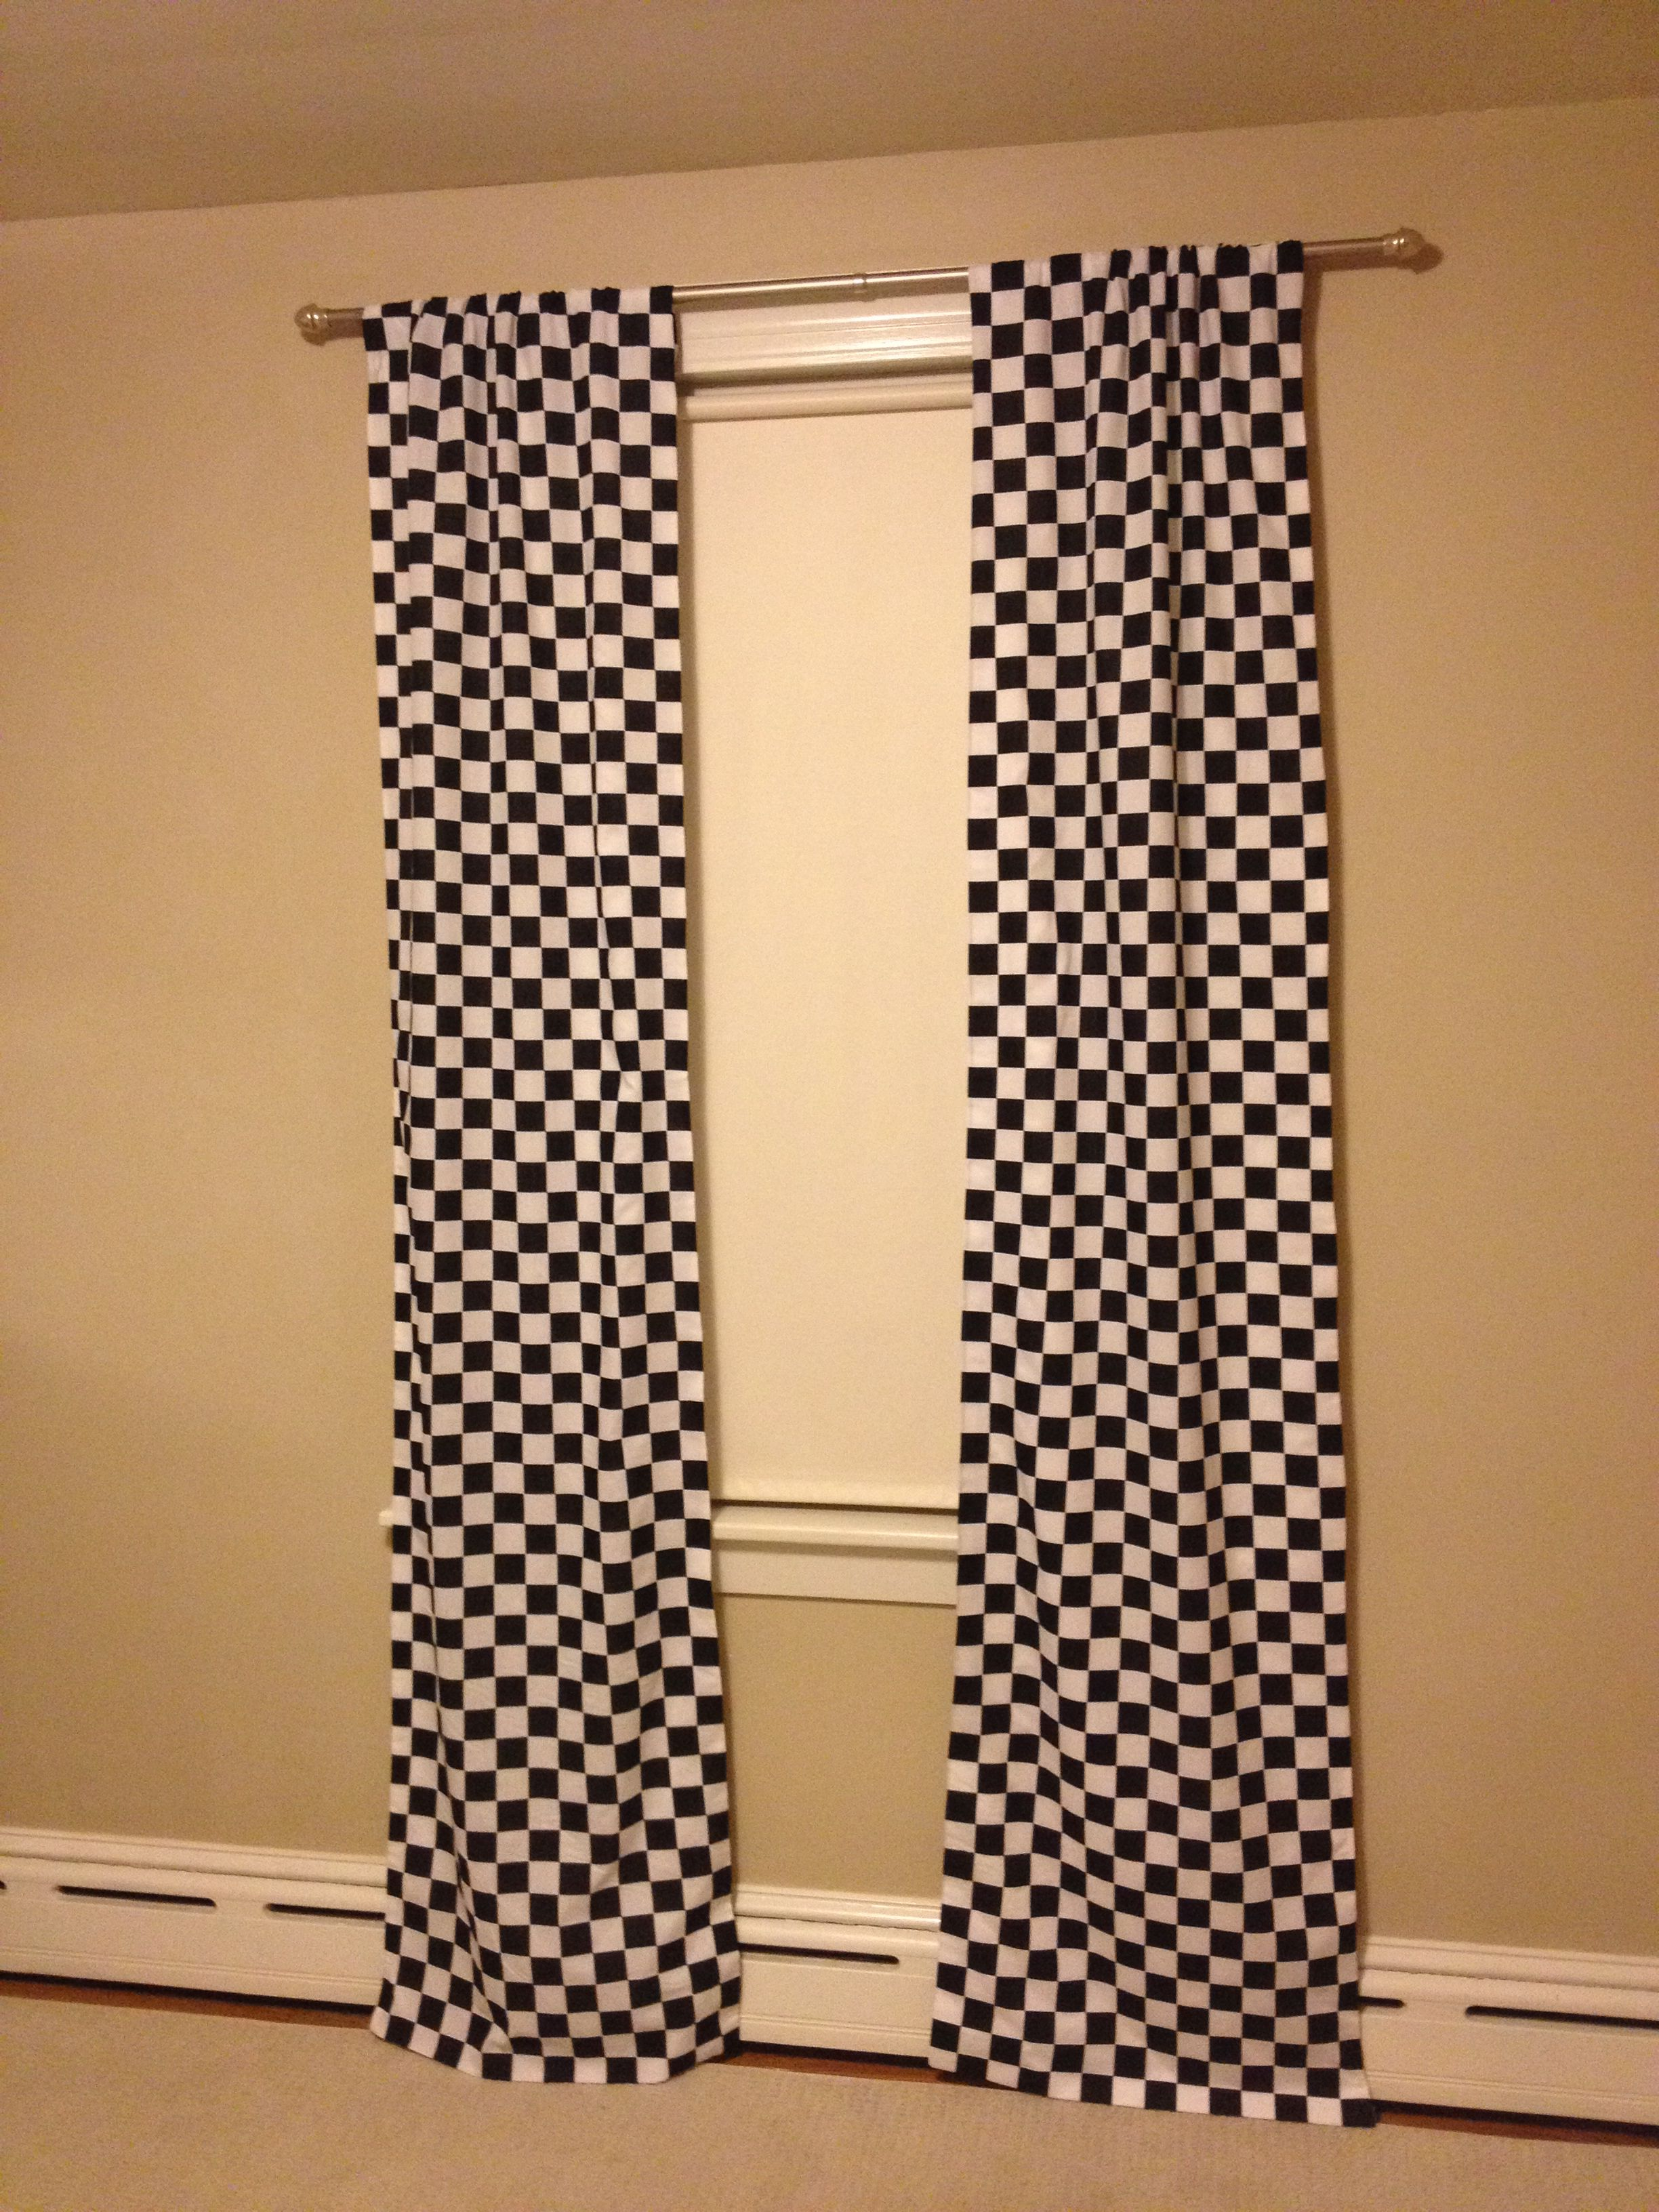 No Sew Checkered Flag Curtains Just Used An Iron And Some Stitch